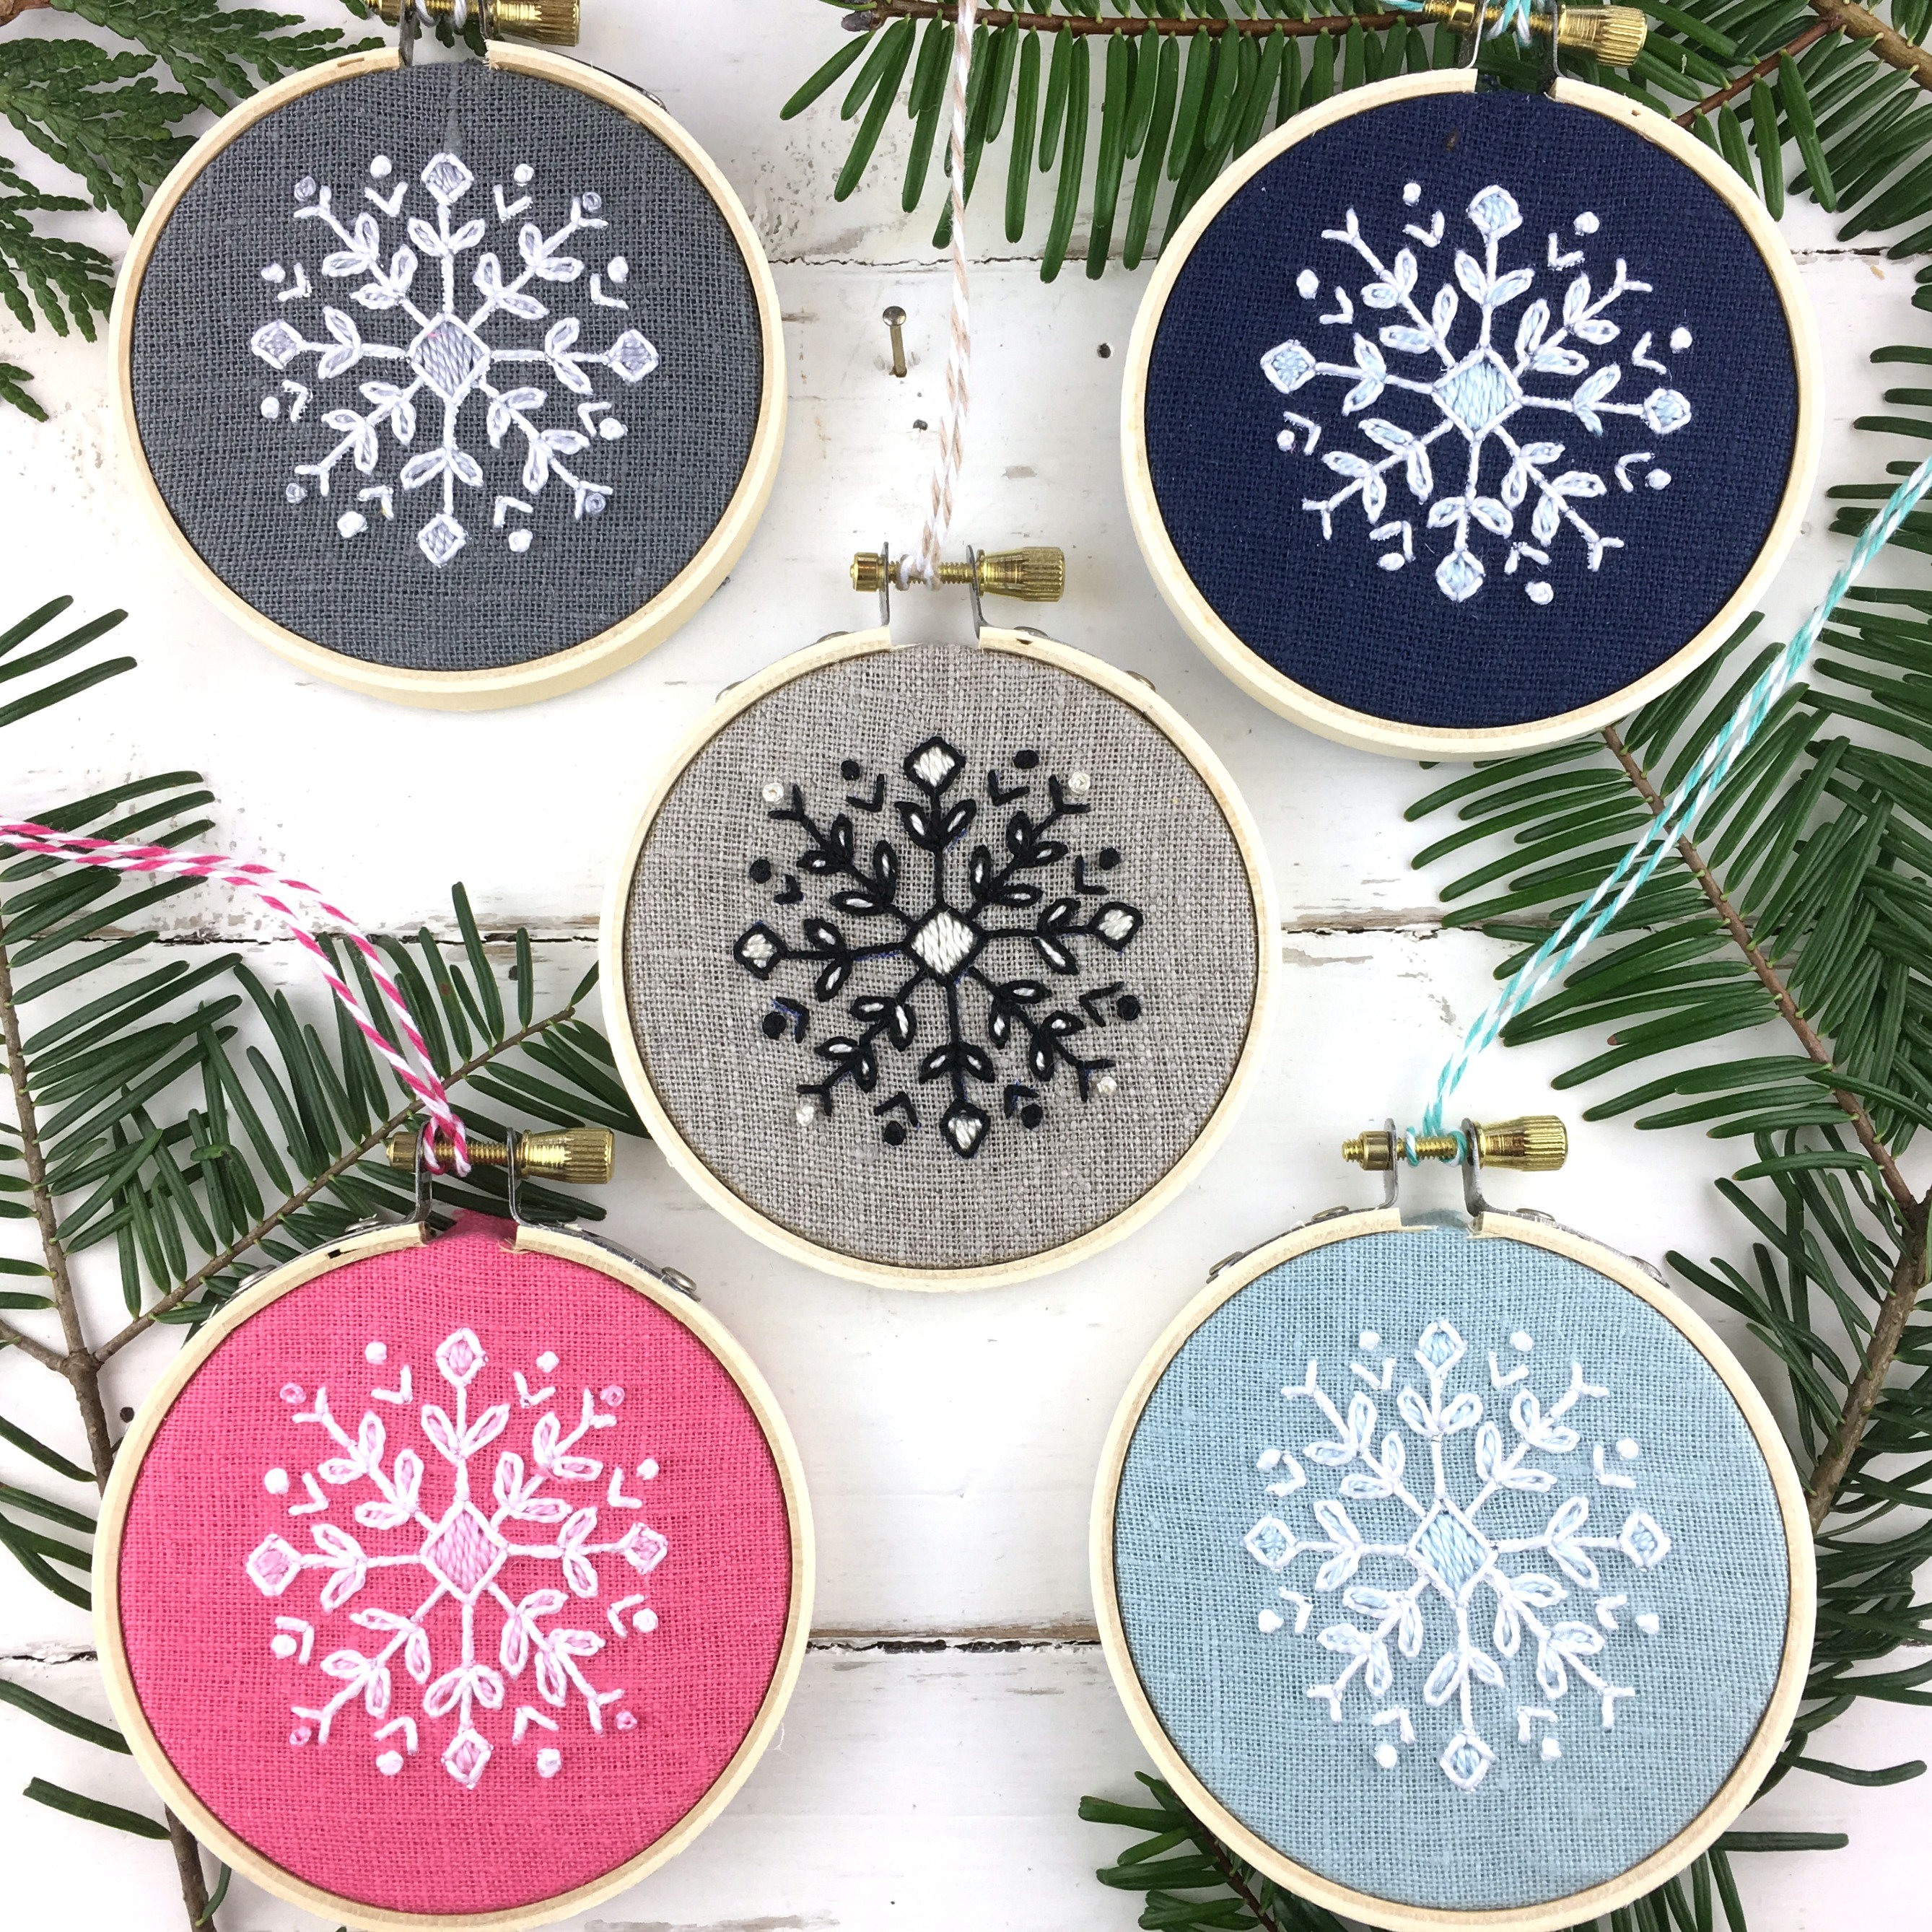 Embroidery Christmas Patterns Natural Christmas Embroidery Kit Ornament Embroidery Snowflake